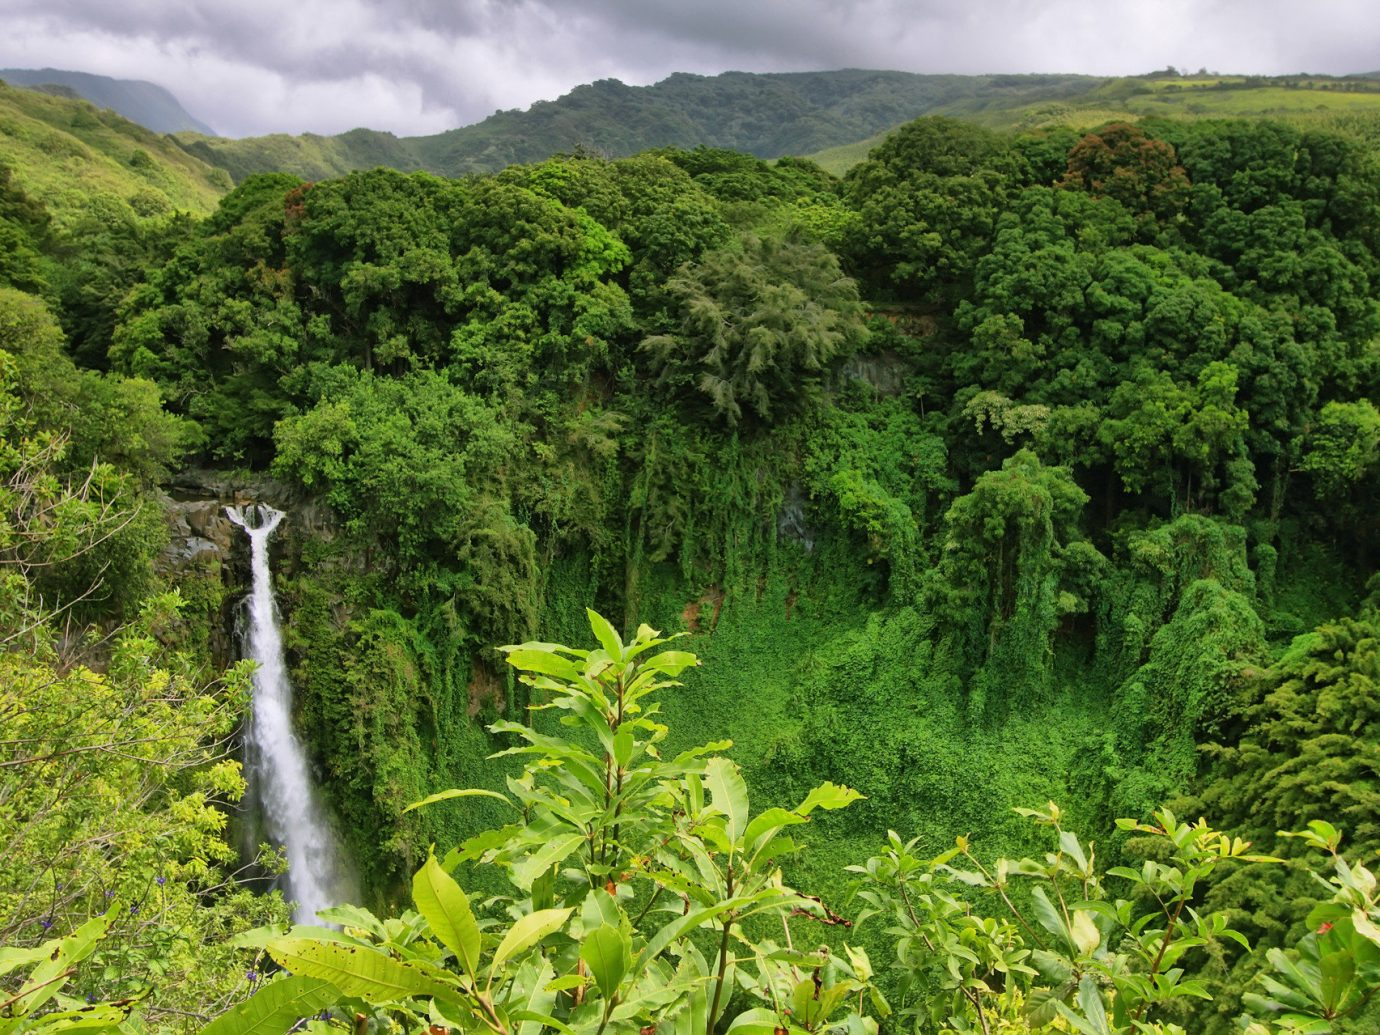 Jetsetter Guides tree outdoor vegetation habitat green rainforest natural environment Forest ecosystem flora Nature botany old growth forest plant Jungle hill mountain flower plantation Waterfall biome water feature tropics shrub surrounded lush wooded